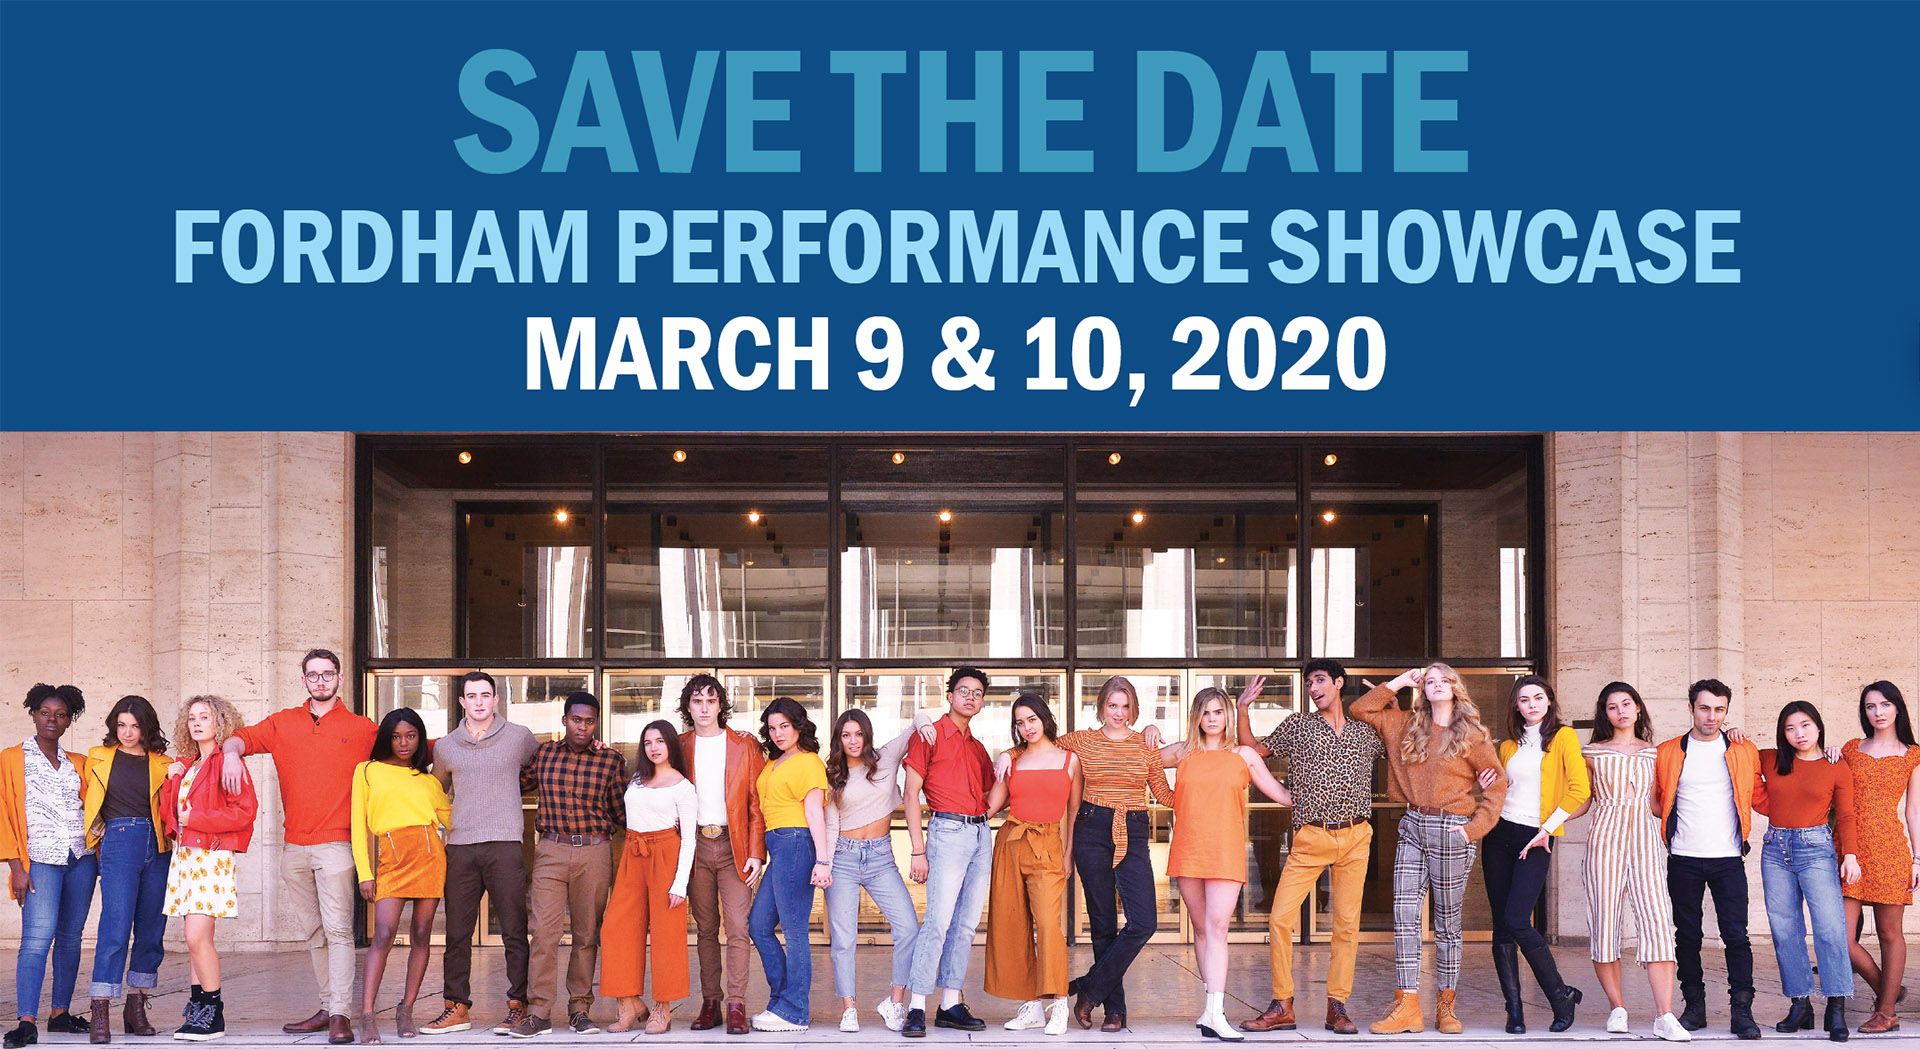 Save the Date: March 9 & 10, 2020